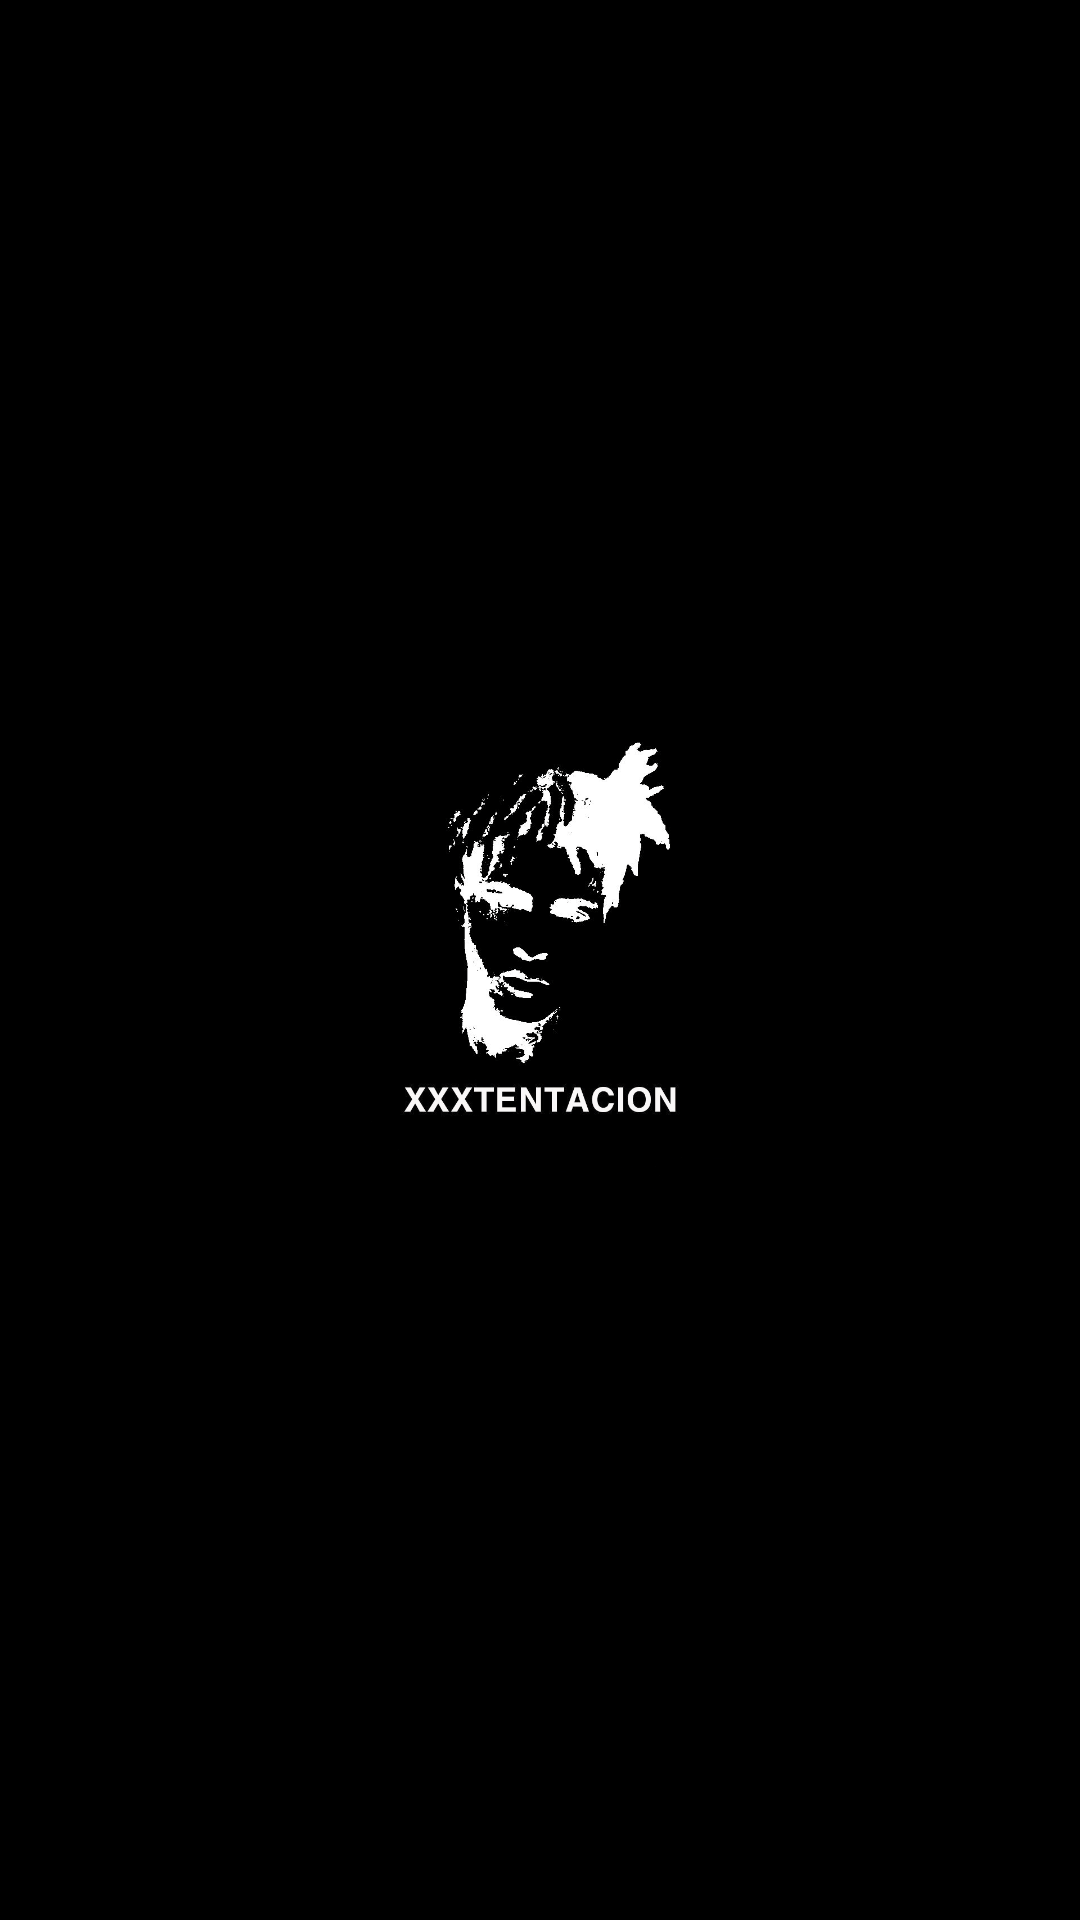 XXXTentacion Square Wallpapers   Top XXXTentacion Square 1080x1920